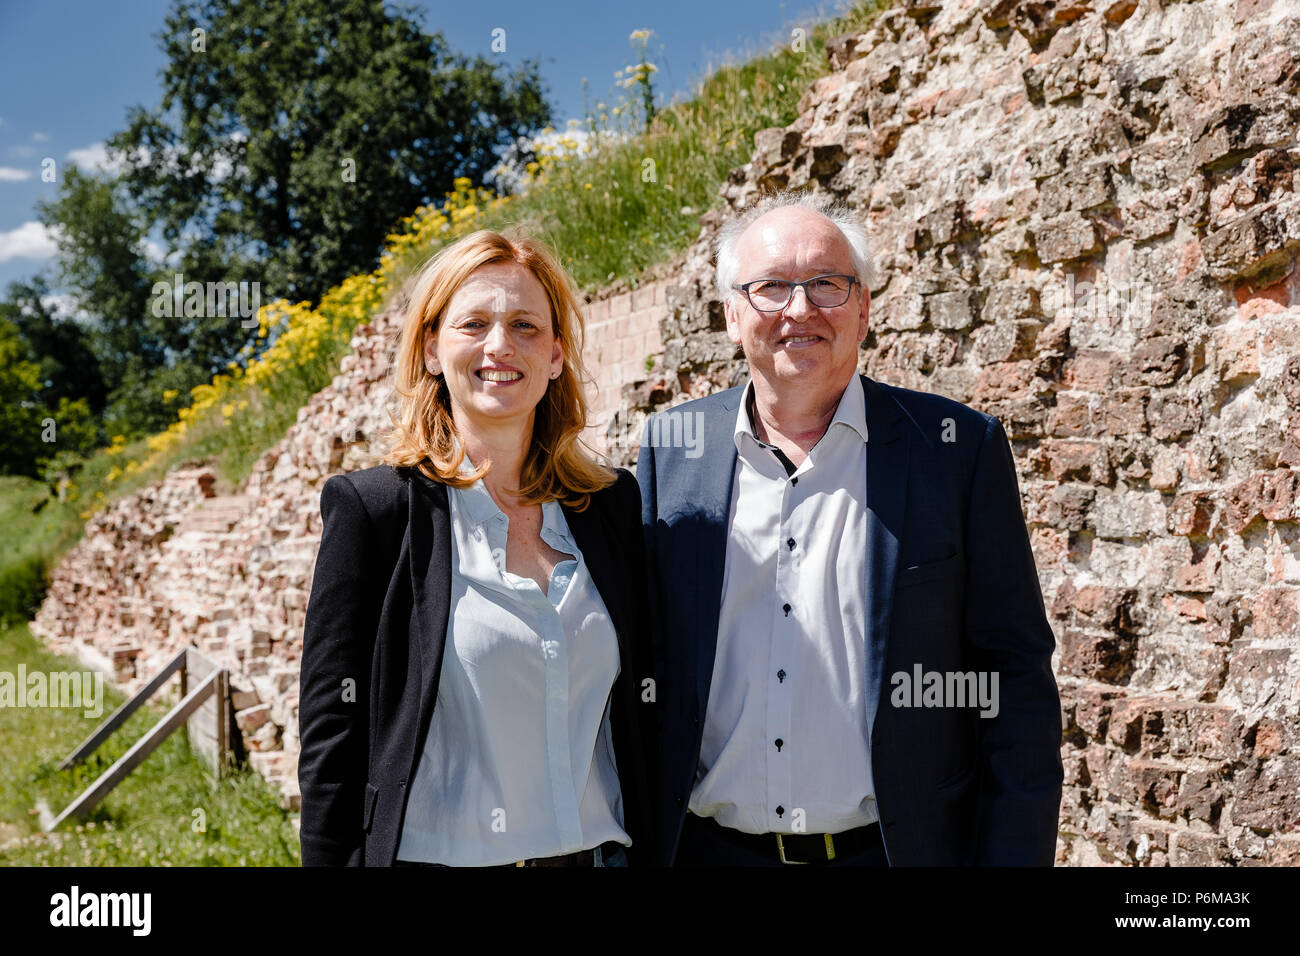 01 July 2018, Germany: Karin Prien (CDU), culture minister of Schleswig-Holstein; and Jon Hardon Hansen, chairman of the Sydslesvigsk Forening (SSV) organisation, standing in front of the Danevirke fortification. Danevirke was entered into the UNESCO World Heritage List, along with the Haitabu Viking site, on 30 June 2018. Photo: Markus Scholz/dpa - Stock Image